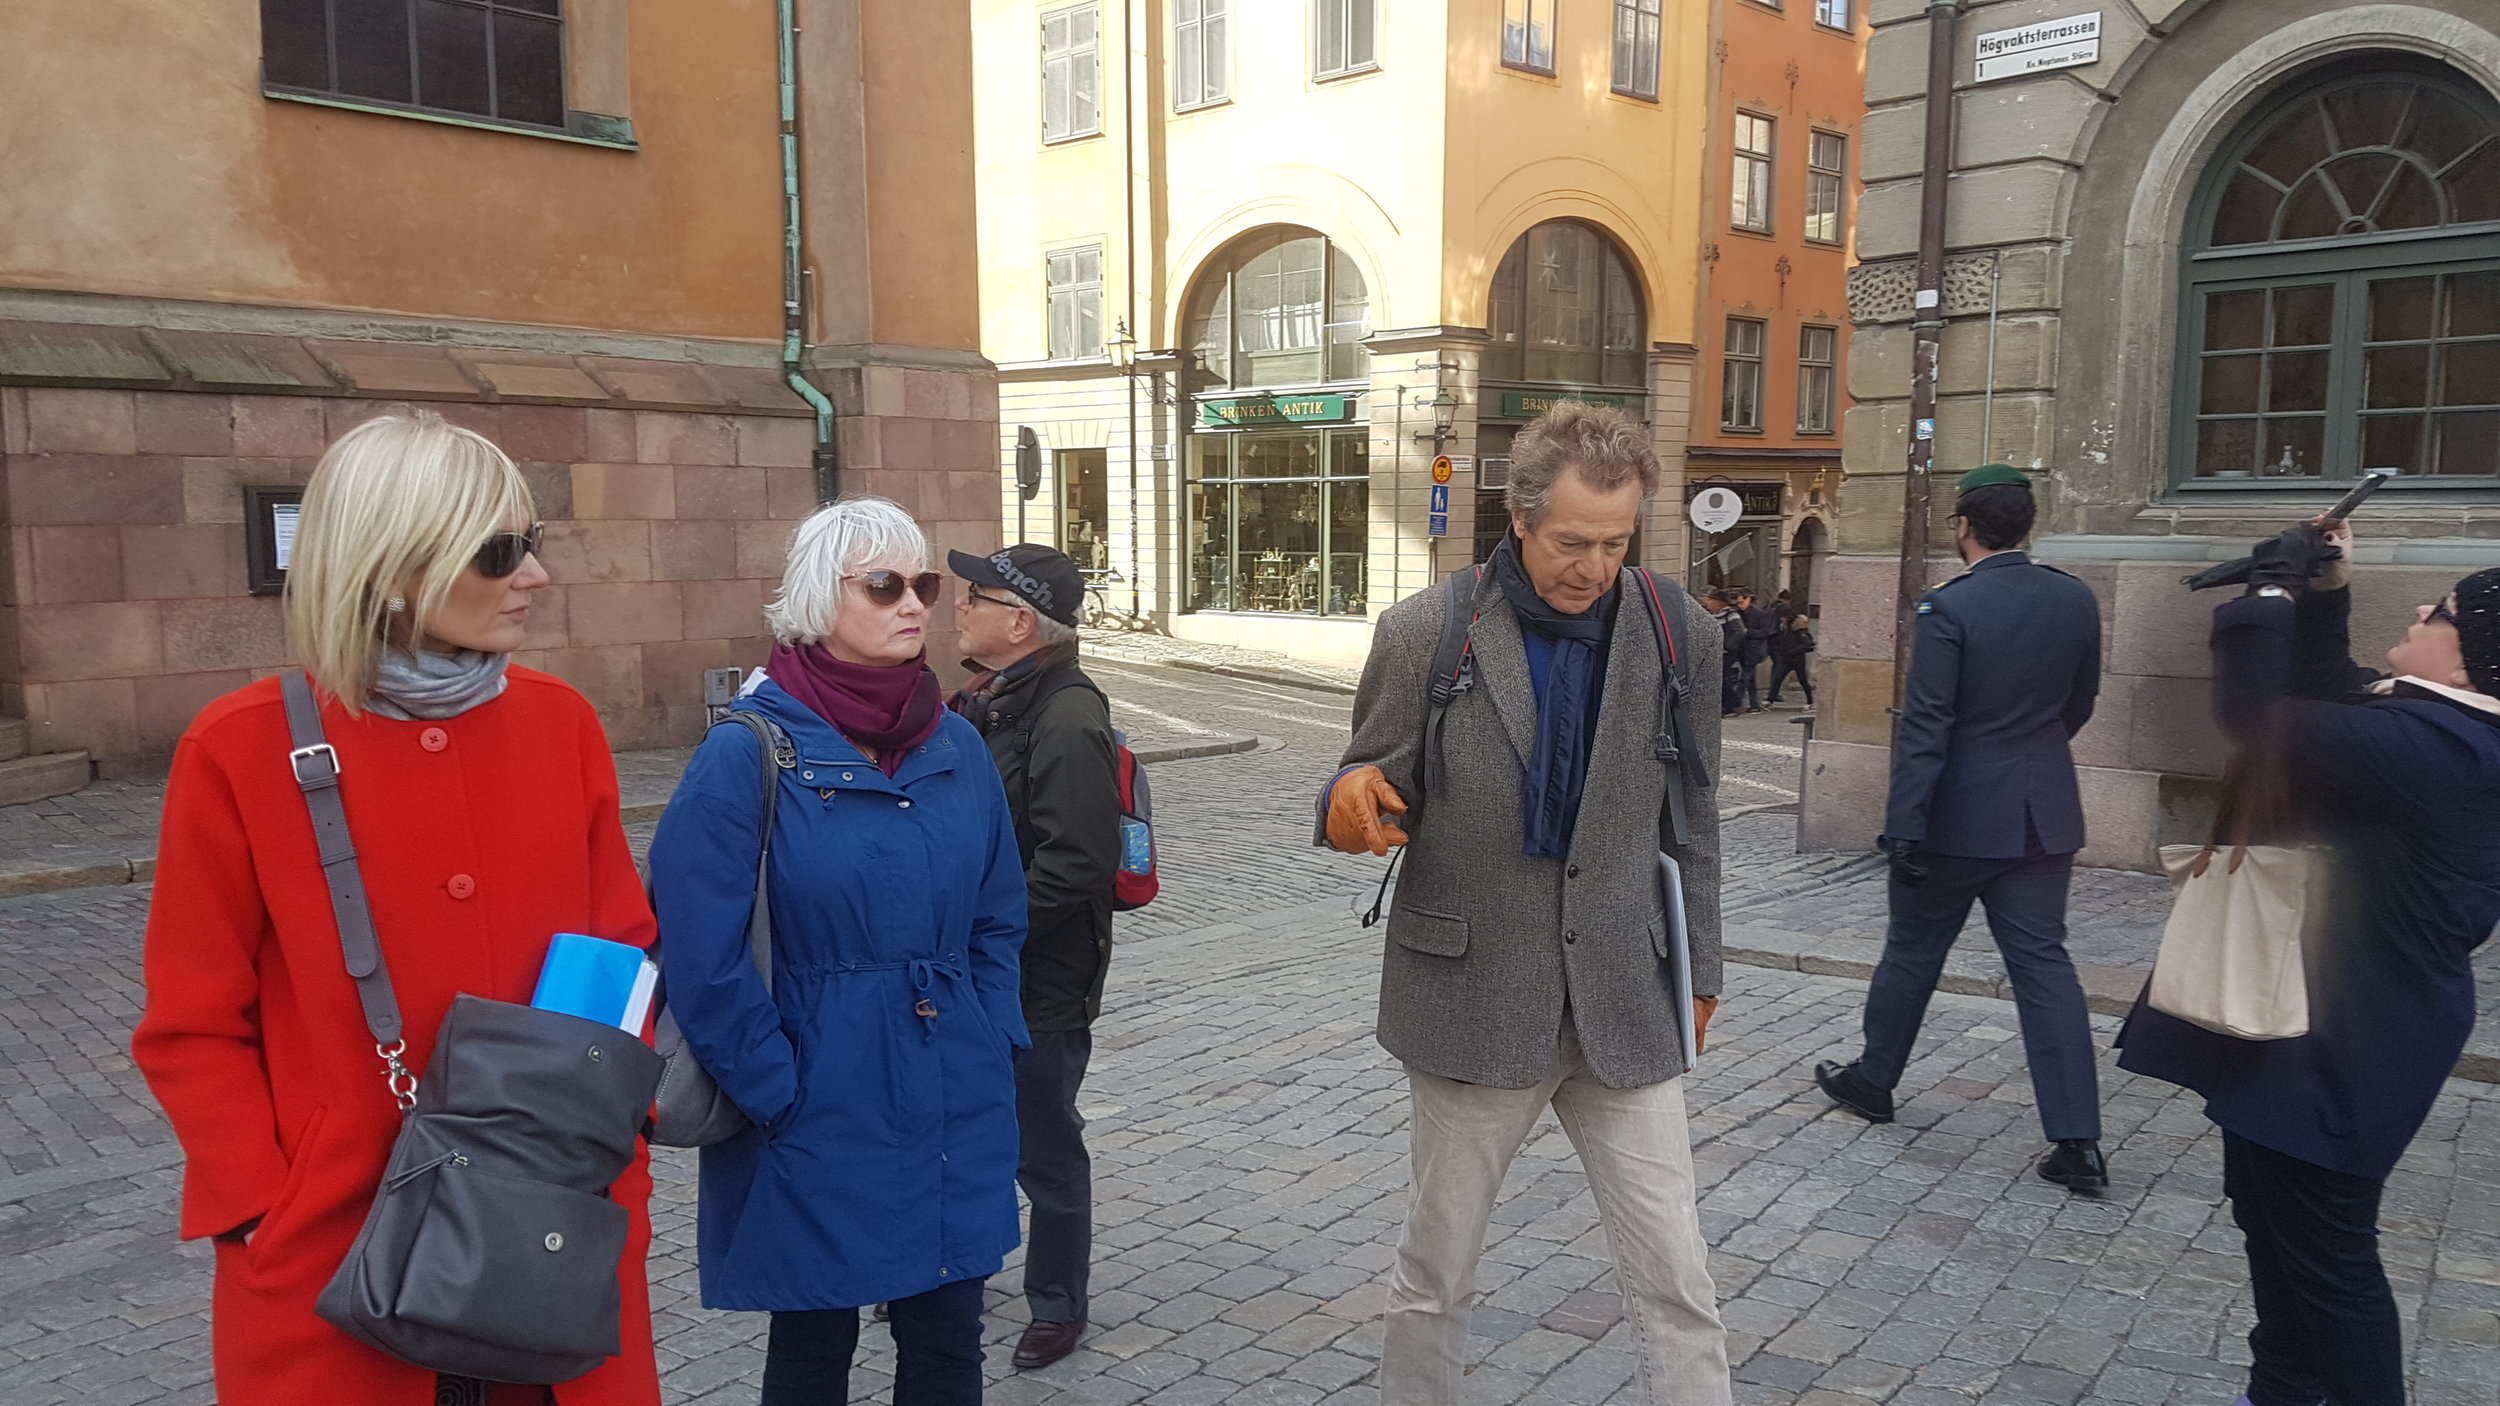 Magnus Hammer, my retired IUT colleague showing us the many delights that Stockholm has to offer.